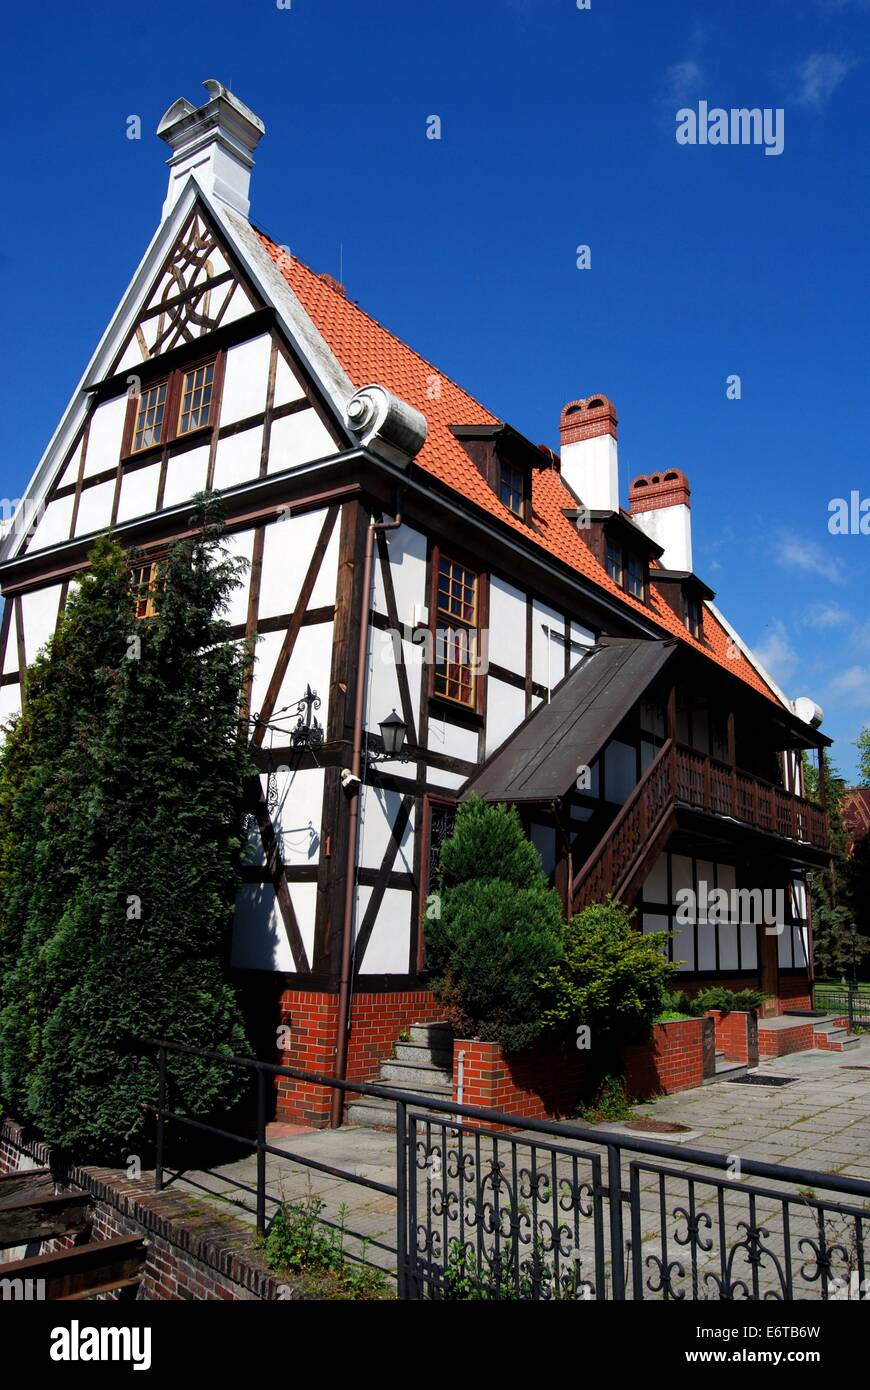 GDANSK, POLAND:  Half-timber house with wooden trim and exterior staircase and balcony - Stock Image